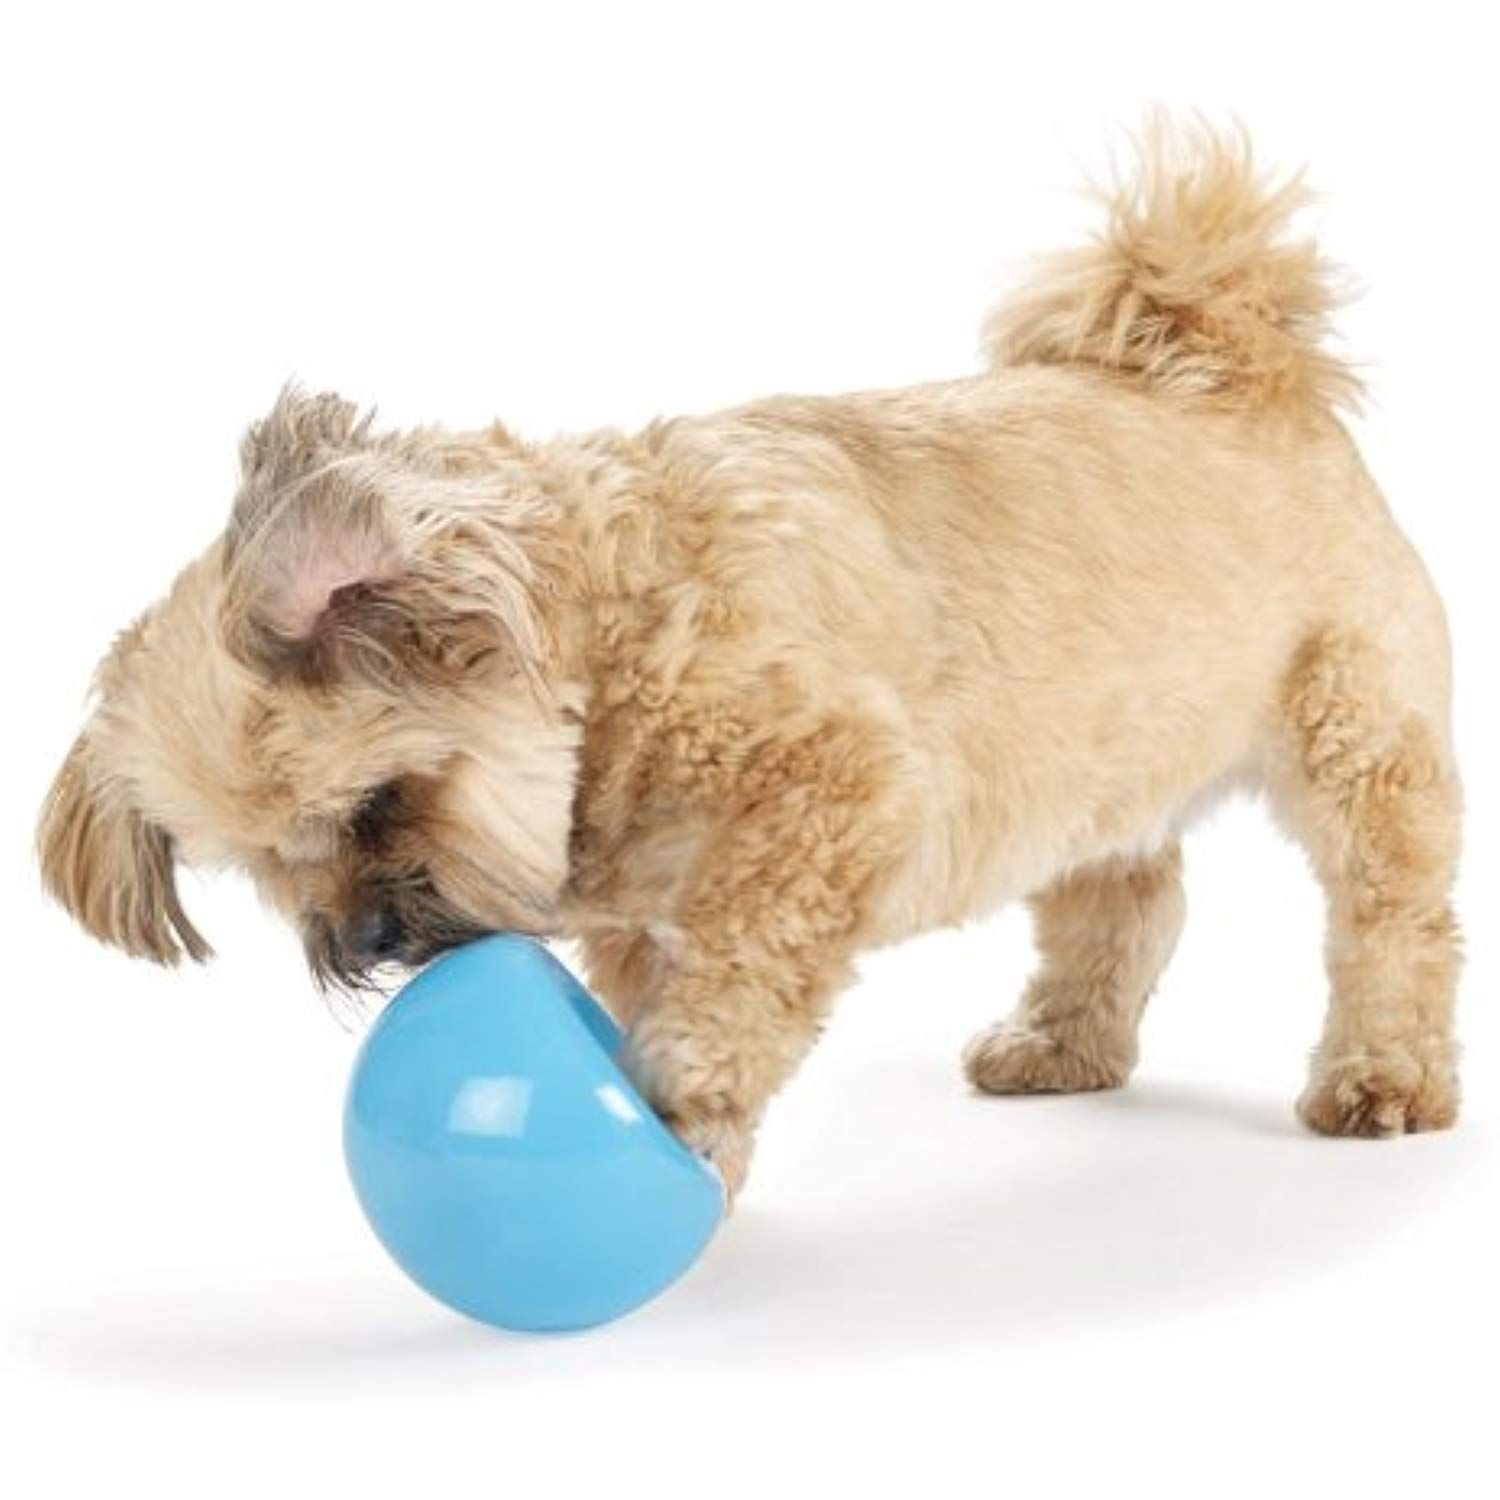 Planet Dog Orbee Tuff Snoop Dog Toy Check This Awesome Product